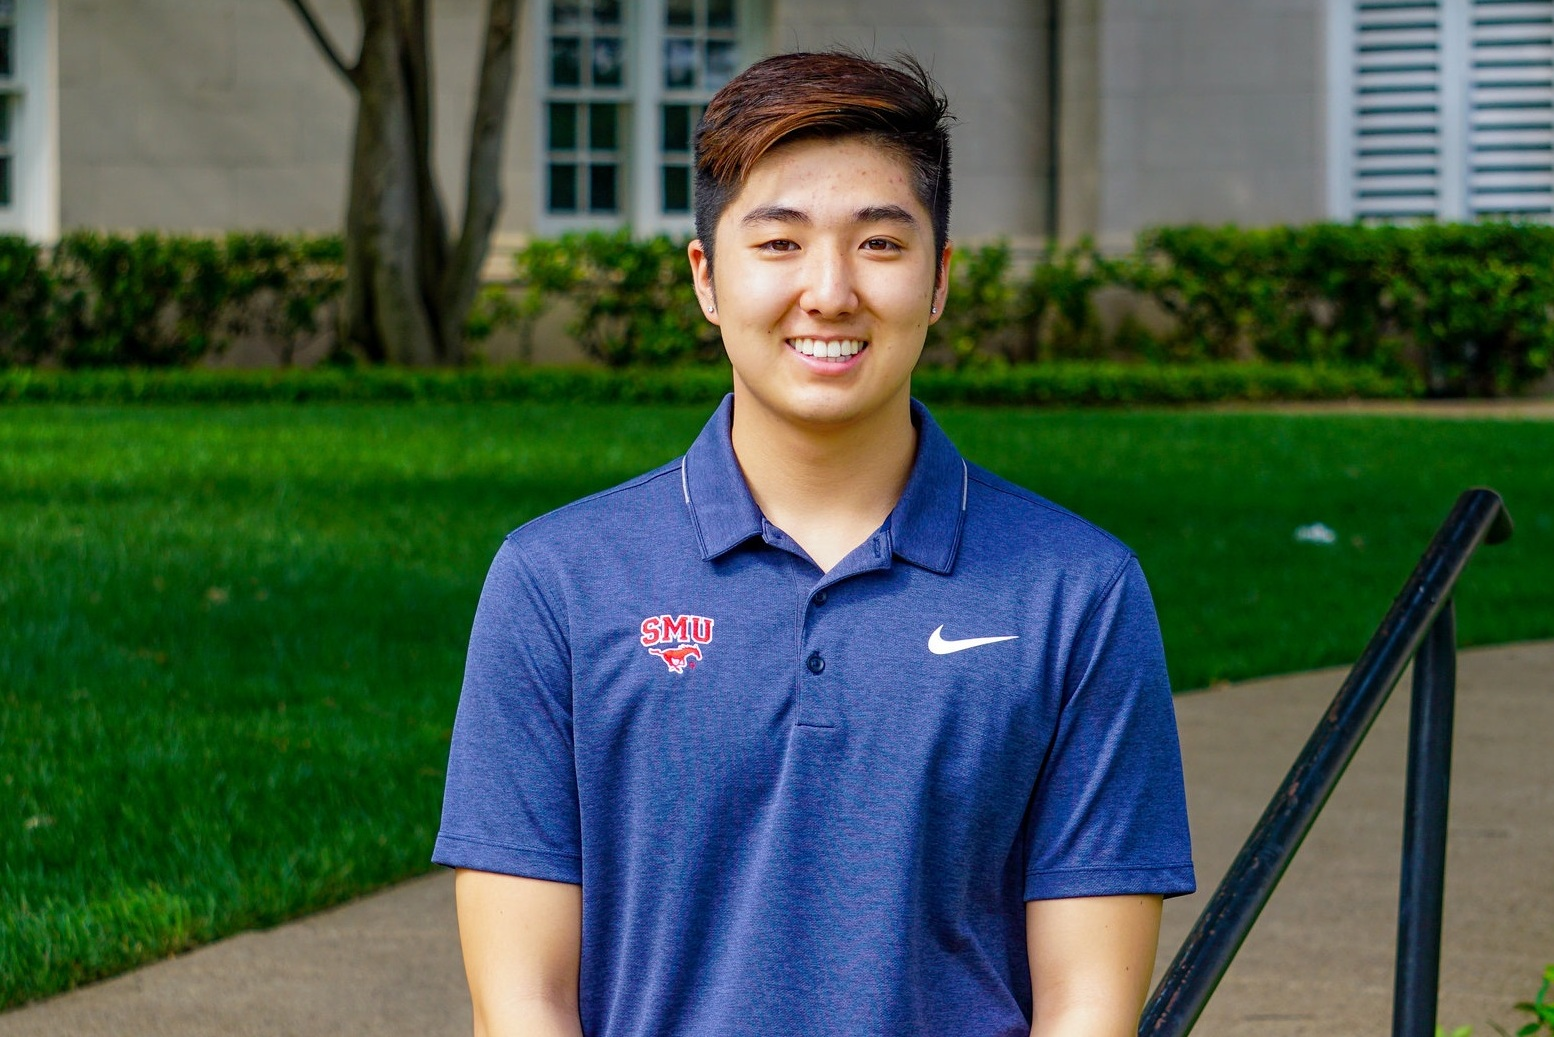 Jacob Joe is a sophomore from Northridge, California studying business. In the future, he would love to be a Private Investor. His favorite snack at Sonday Night Snacks is sopapilla cheesecake, and you can often find him hanging out in the second floor study room. Jacob is passionate about the dodgers, swimming, and community service.